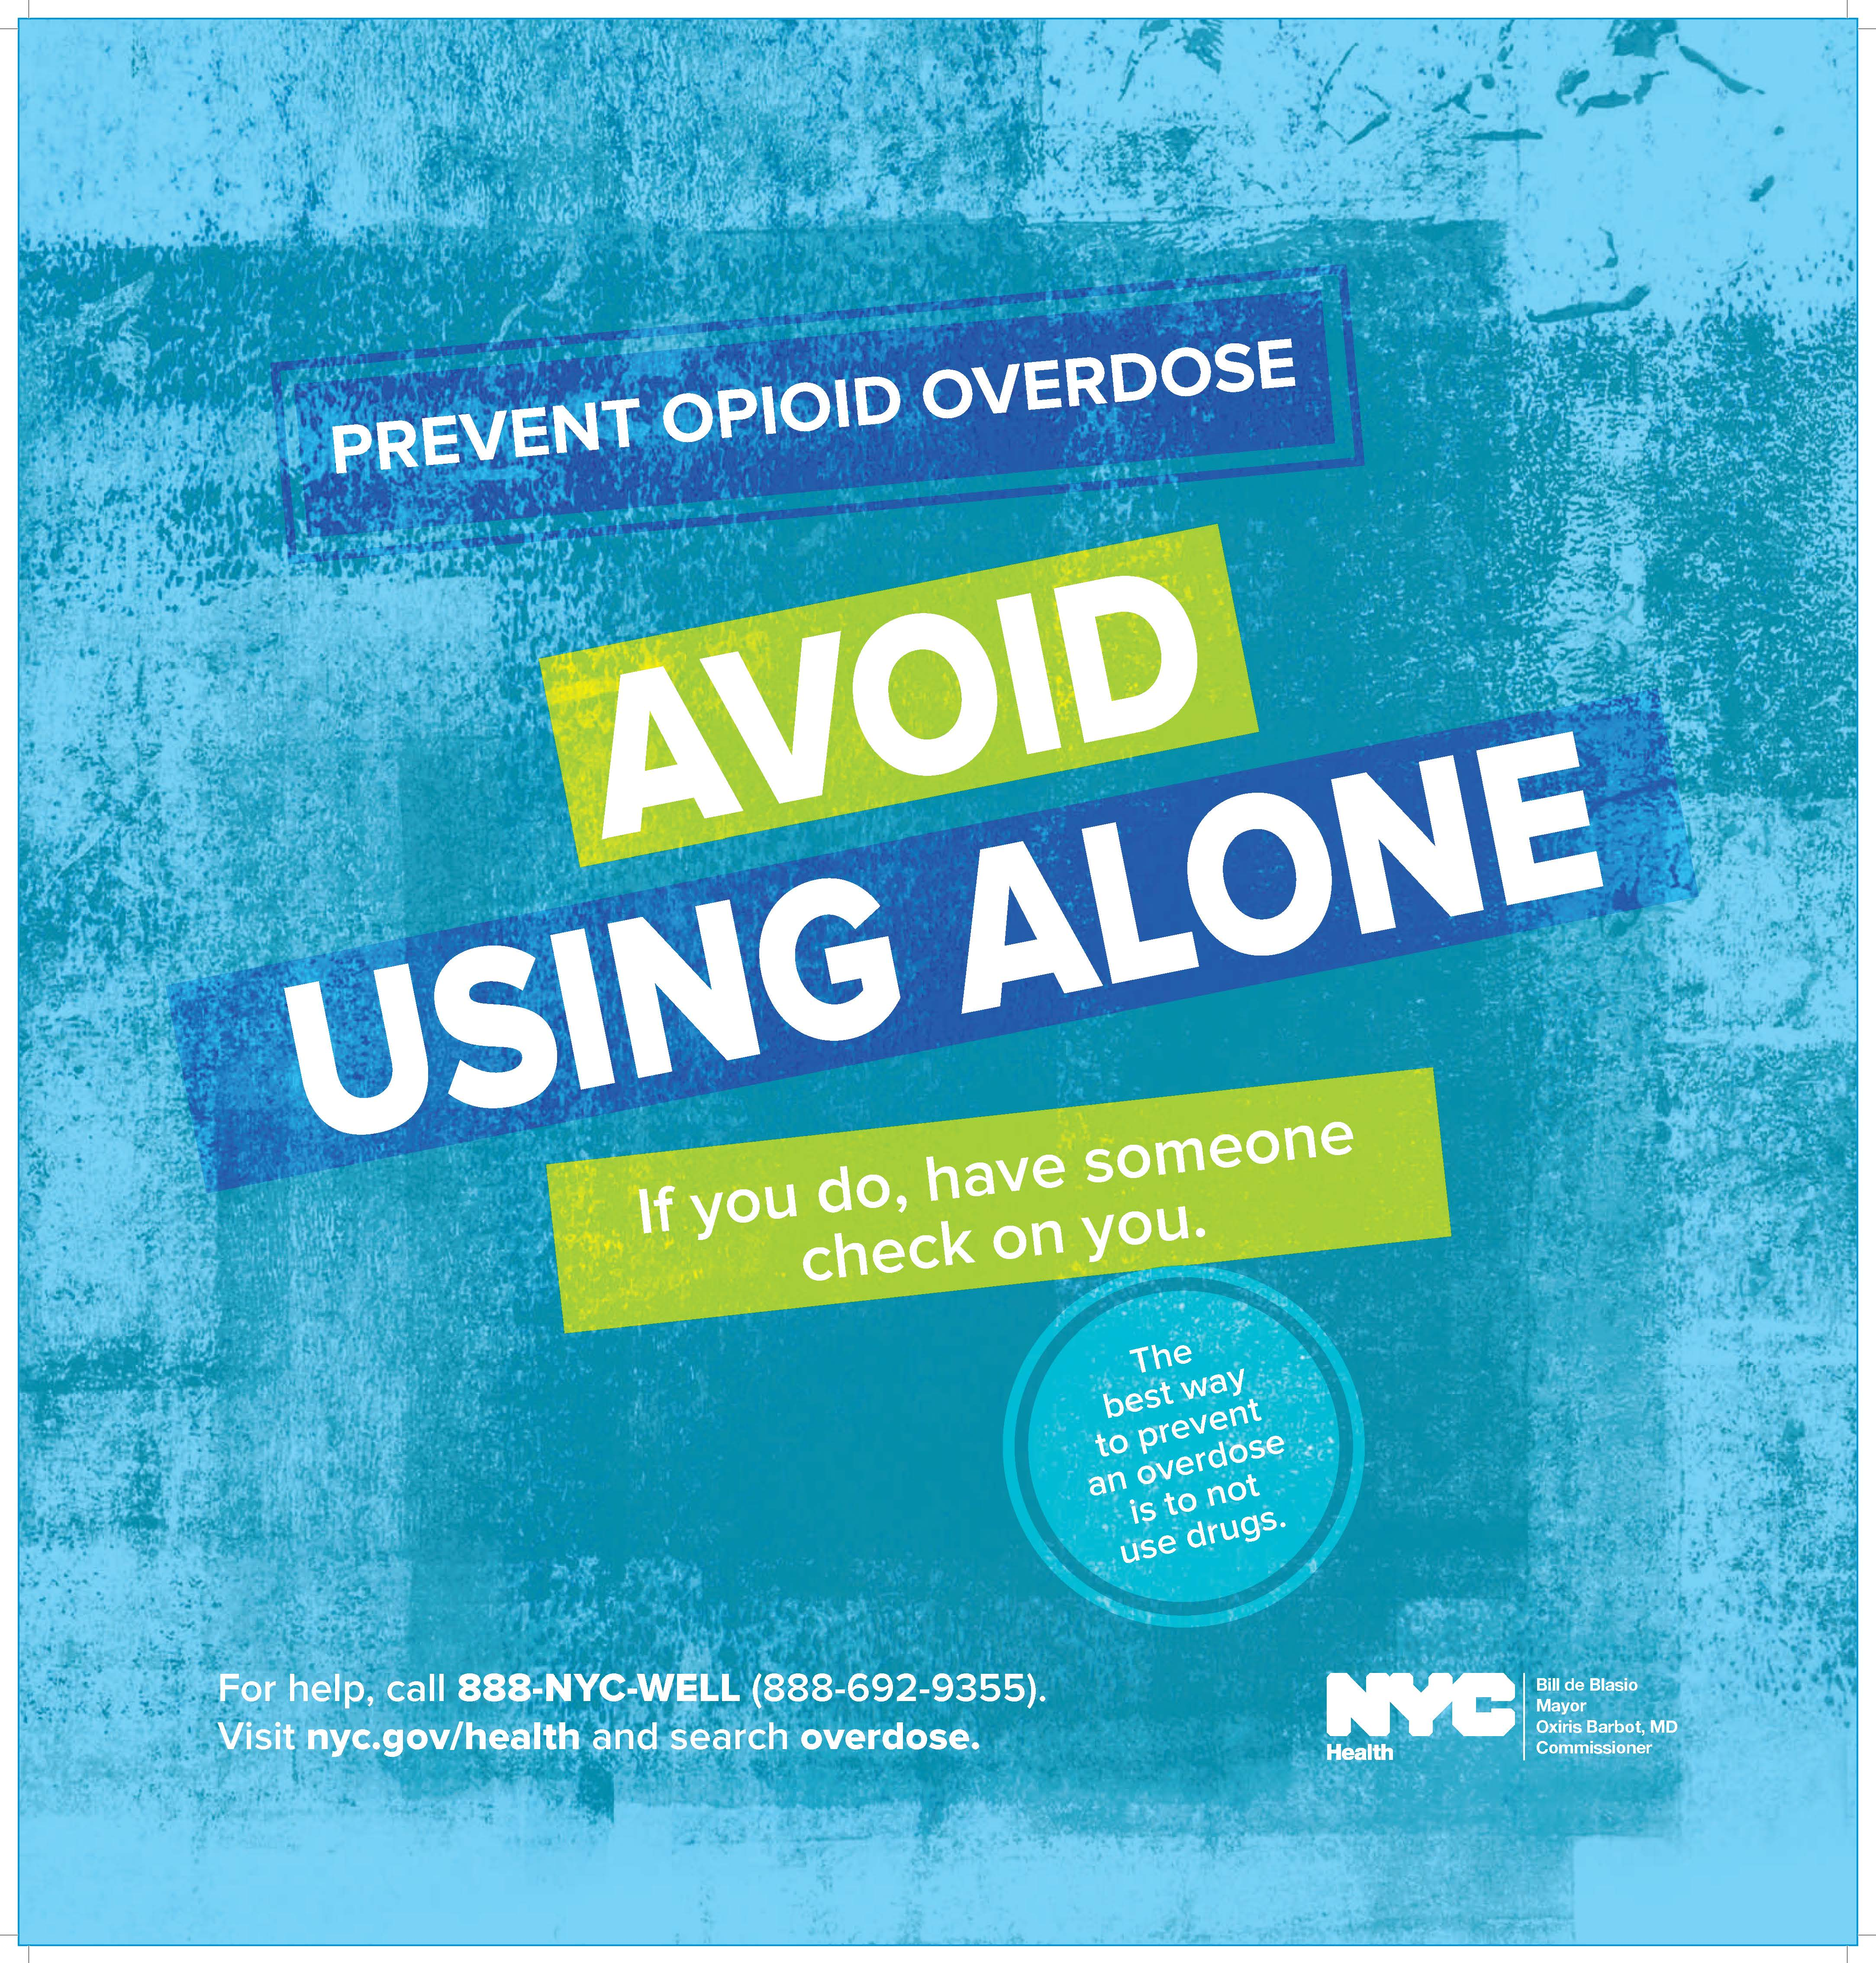 Poster with text reading 'Prevent Opioid Overdose. Avoid Using Alone. If you do, have someone check on you.'